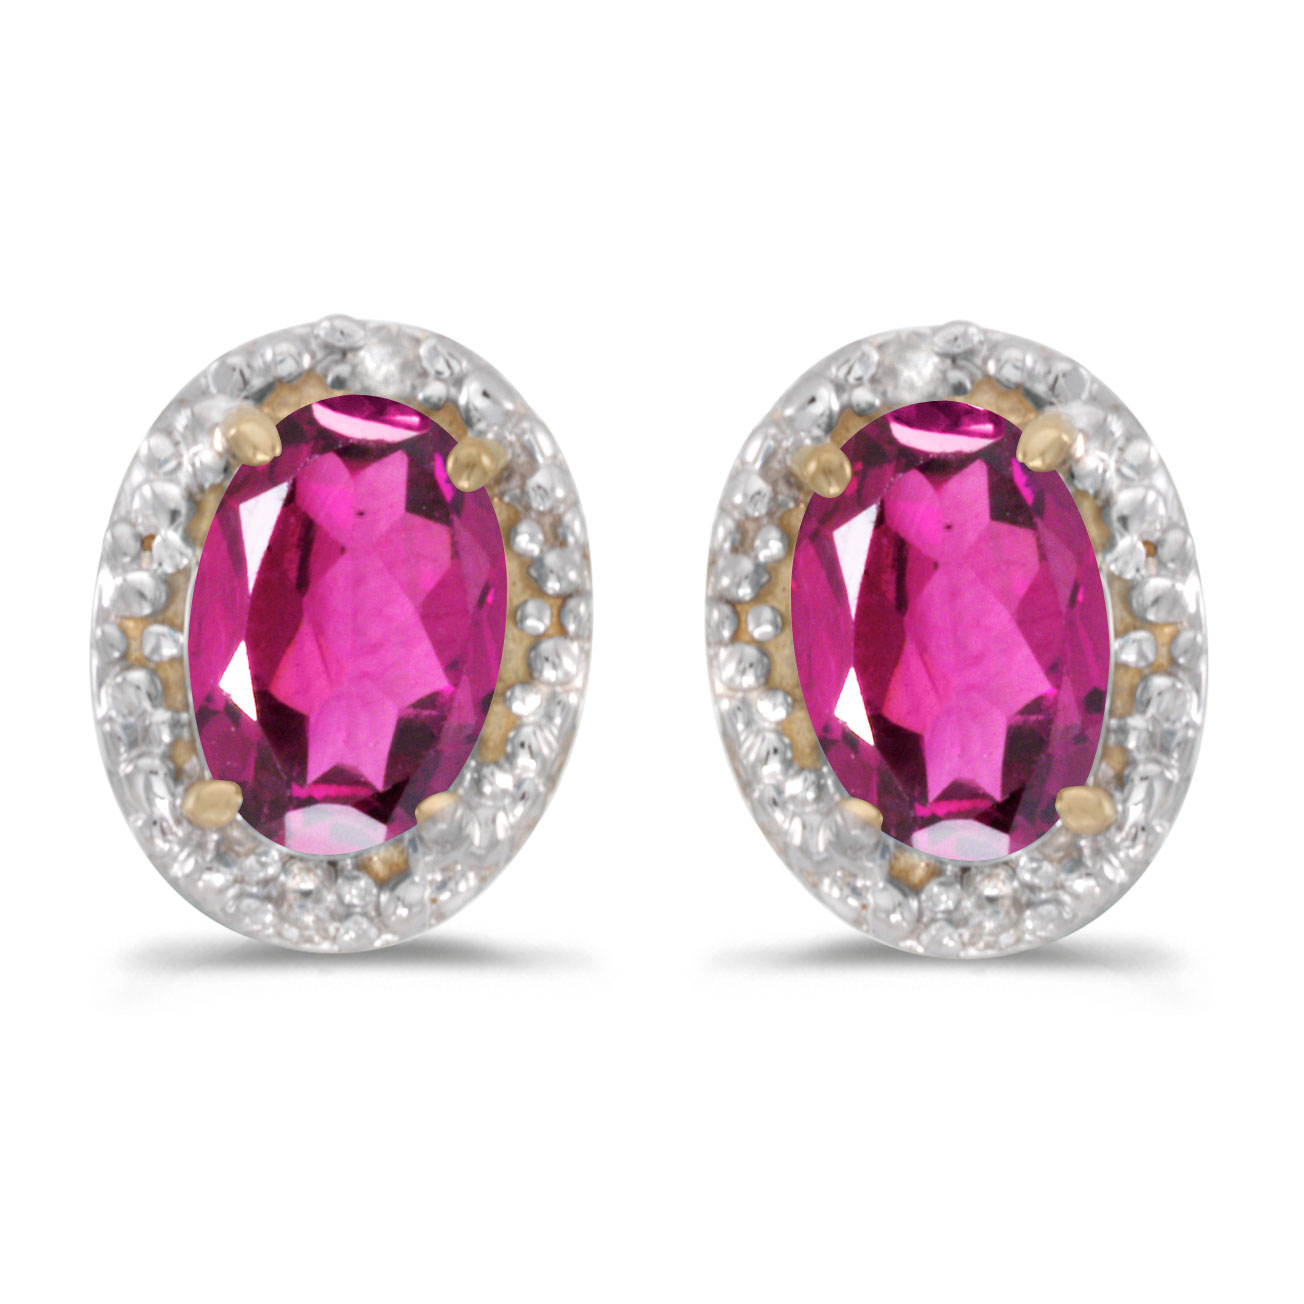 10k Yellow Gold Oval Pink Topaz And Diamond Earrings by